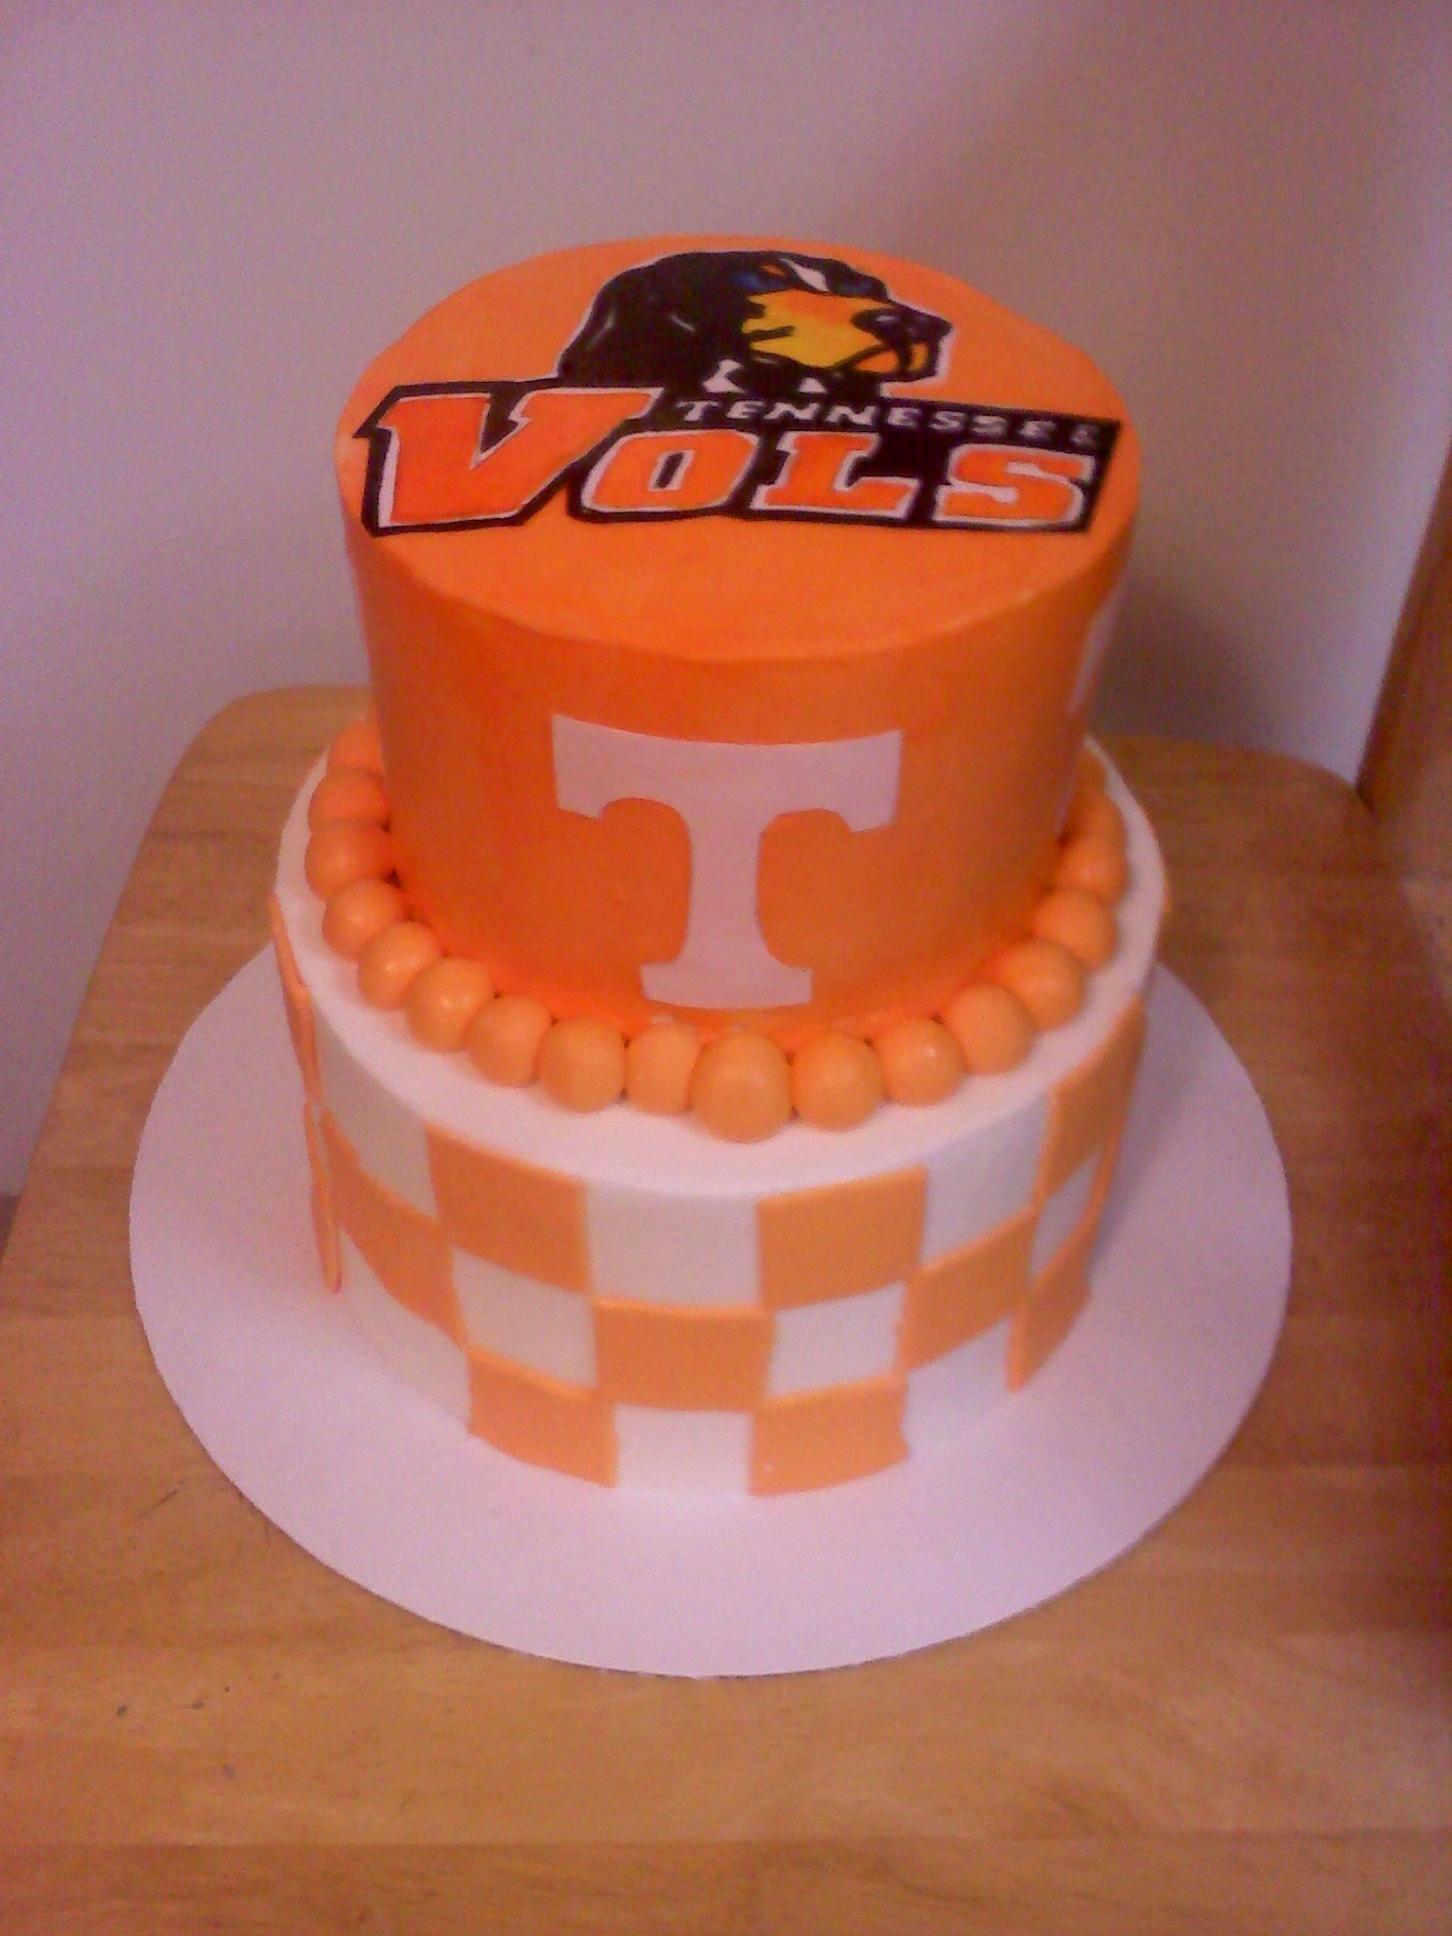 UT Vols birthday cake I love Fall Pinterest Birthday cakes